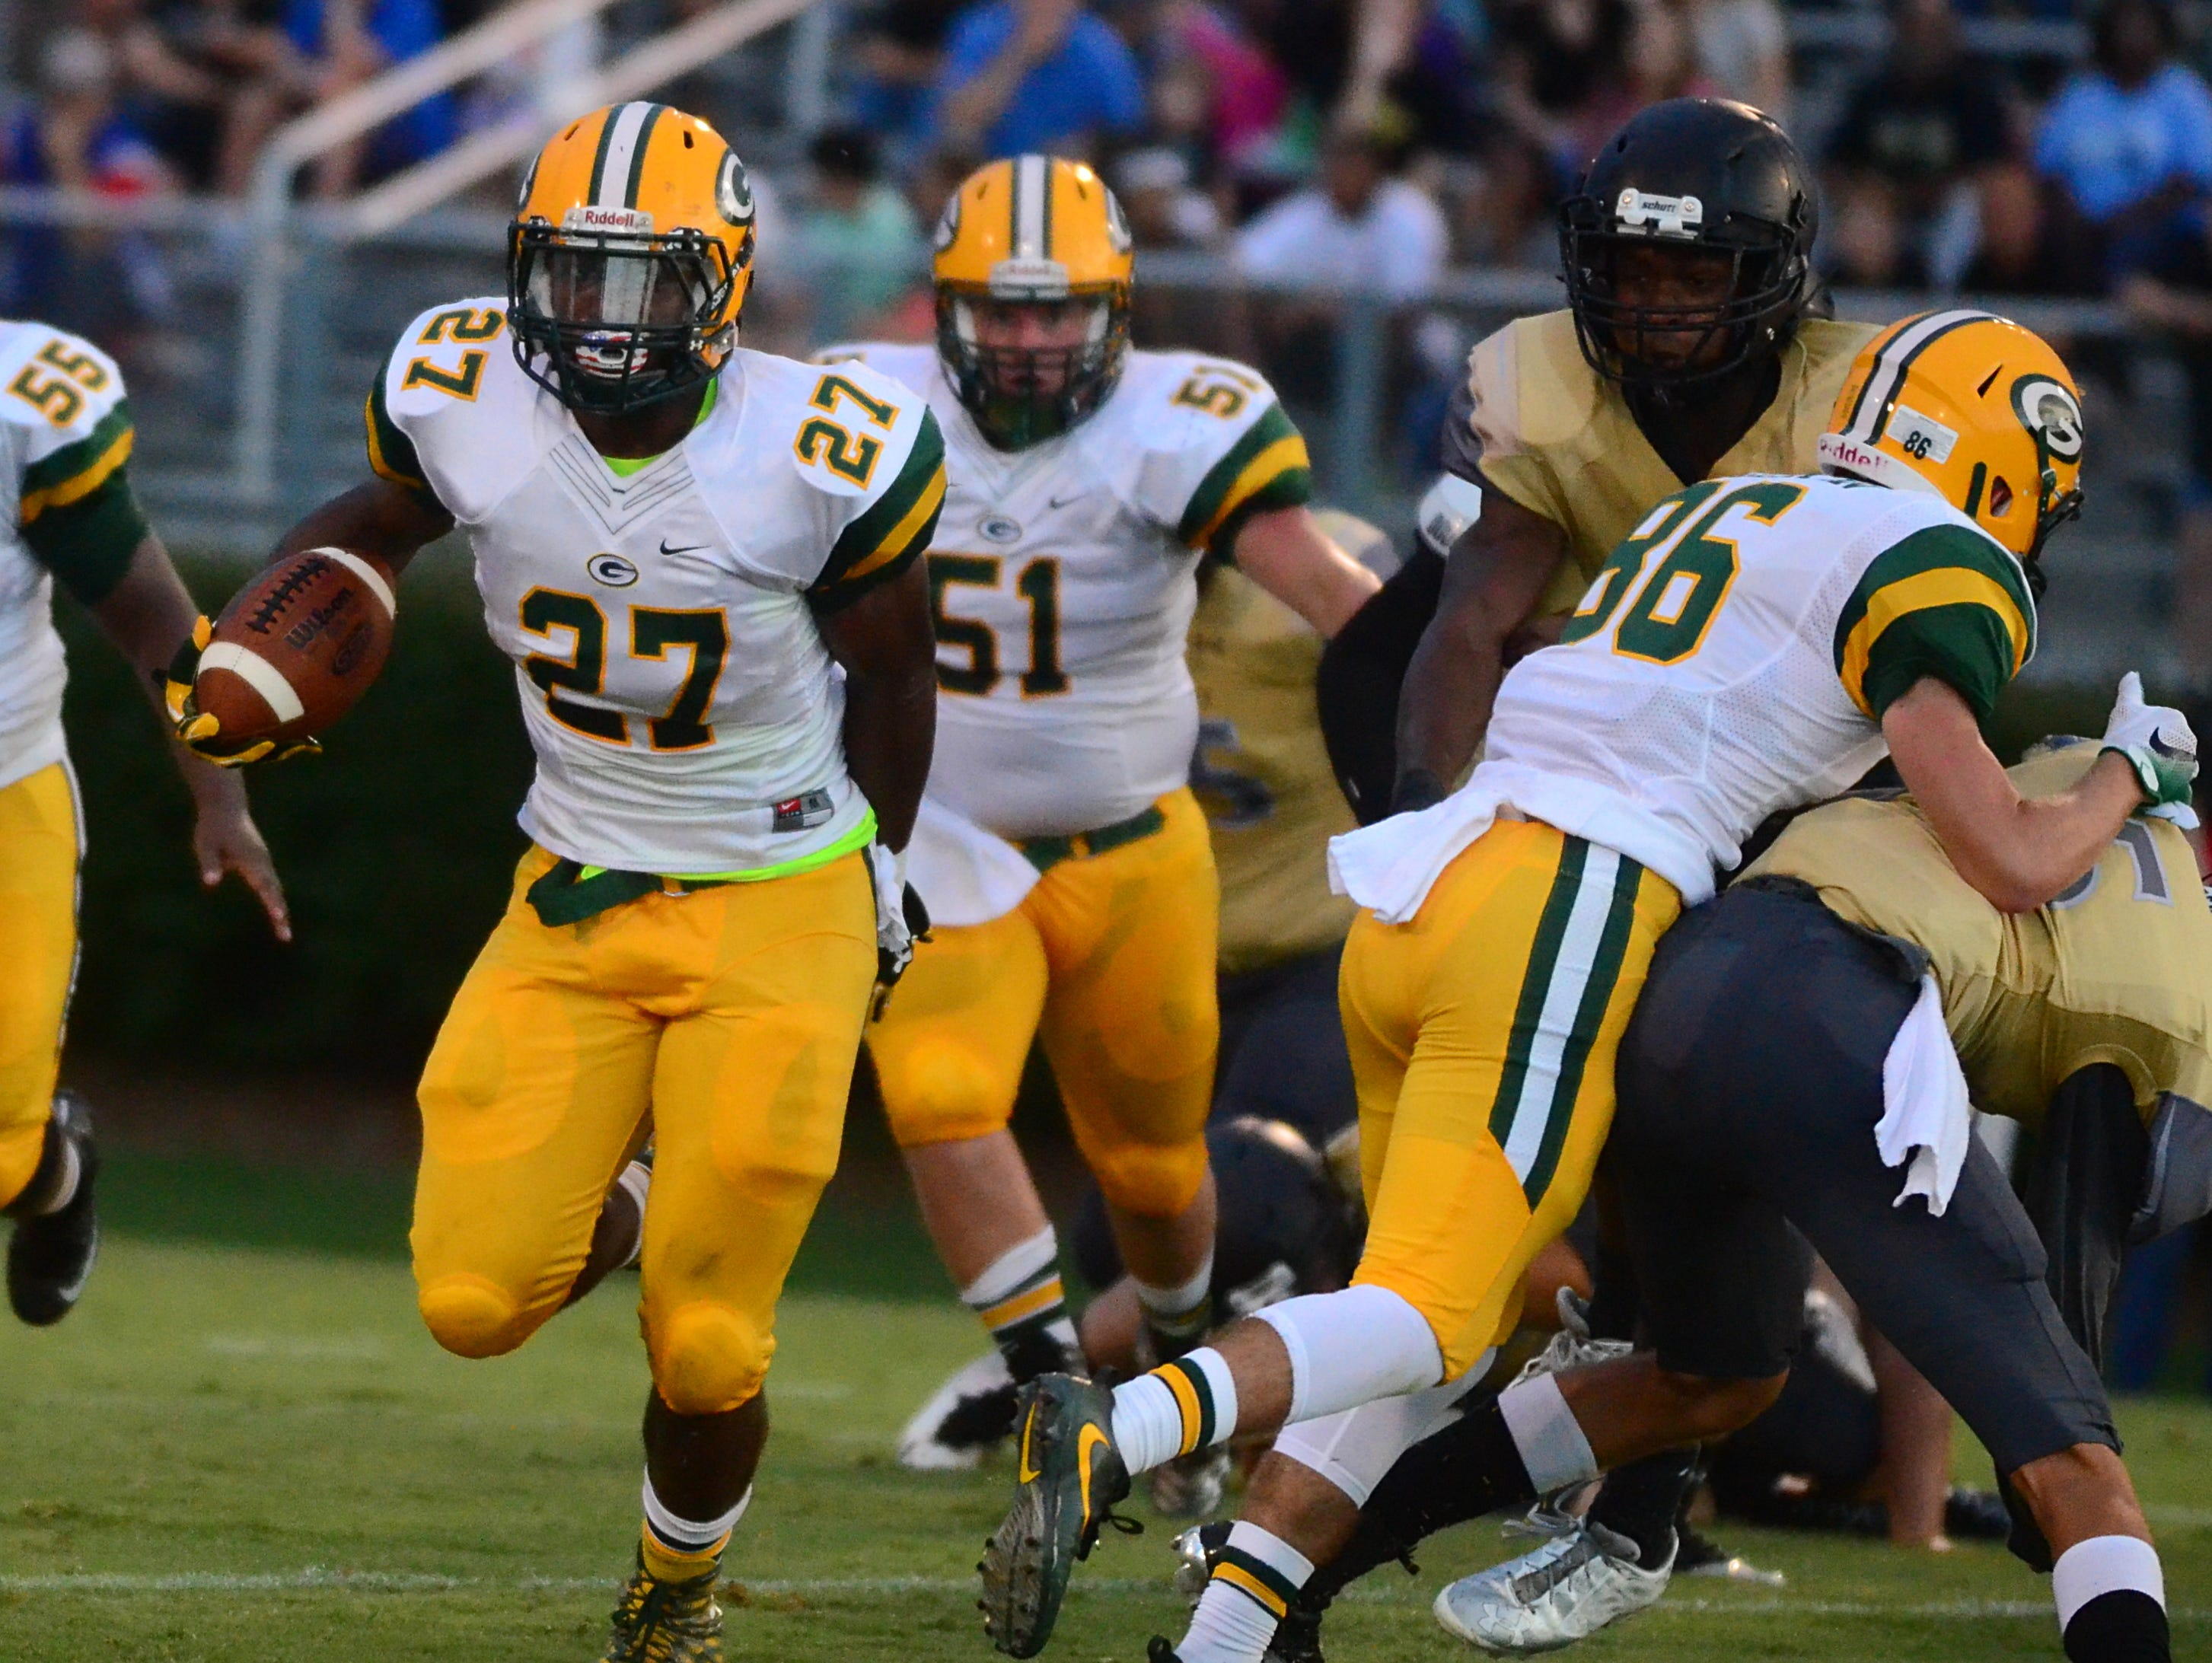 Gallatin senior Matthew Knights (86) blocks ahead of classmate Jordan Mason during first-quarter action. Mason rushed for 250 yards and one touchdown on 20 carries in Friday's 26-6 loss at Mt. Juliet.